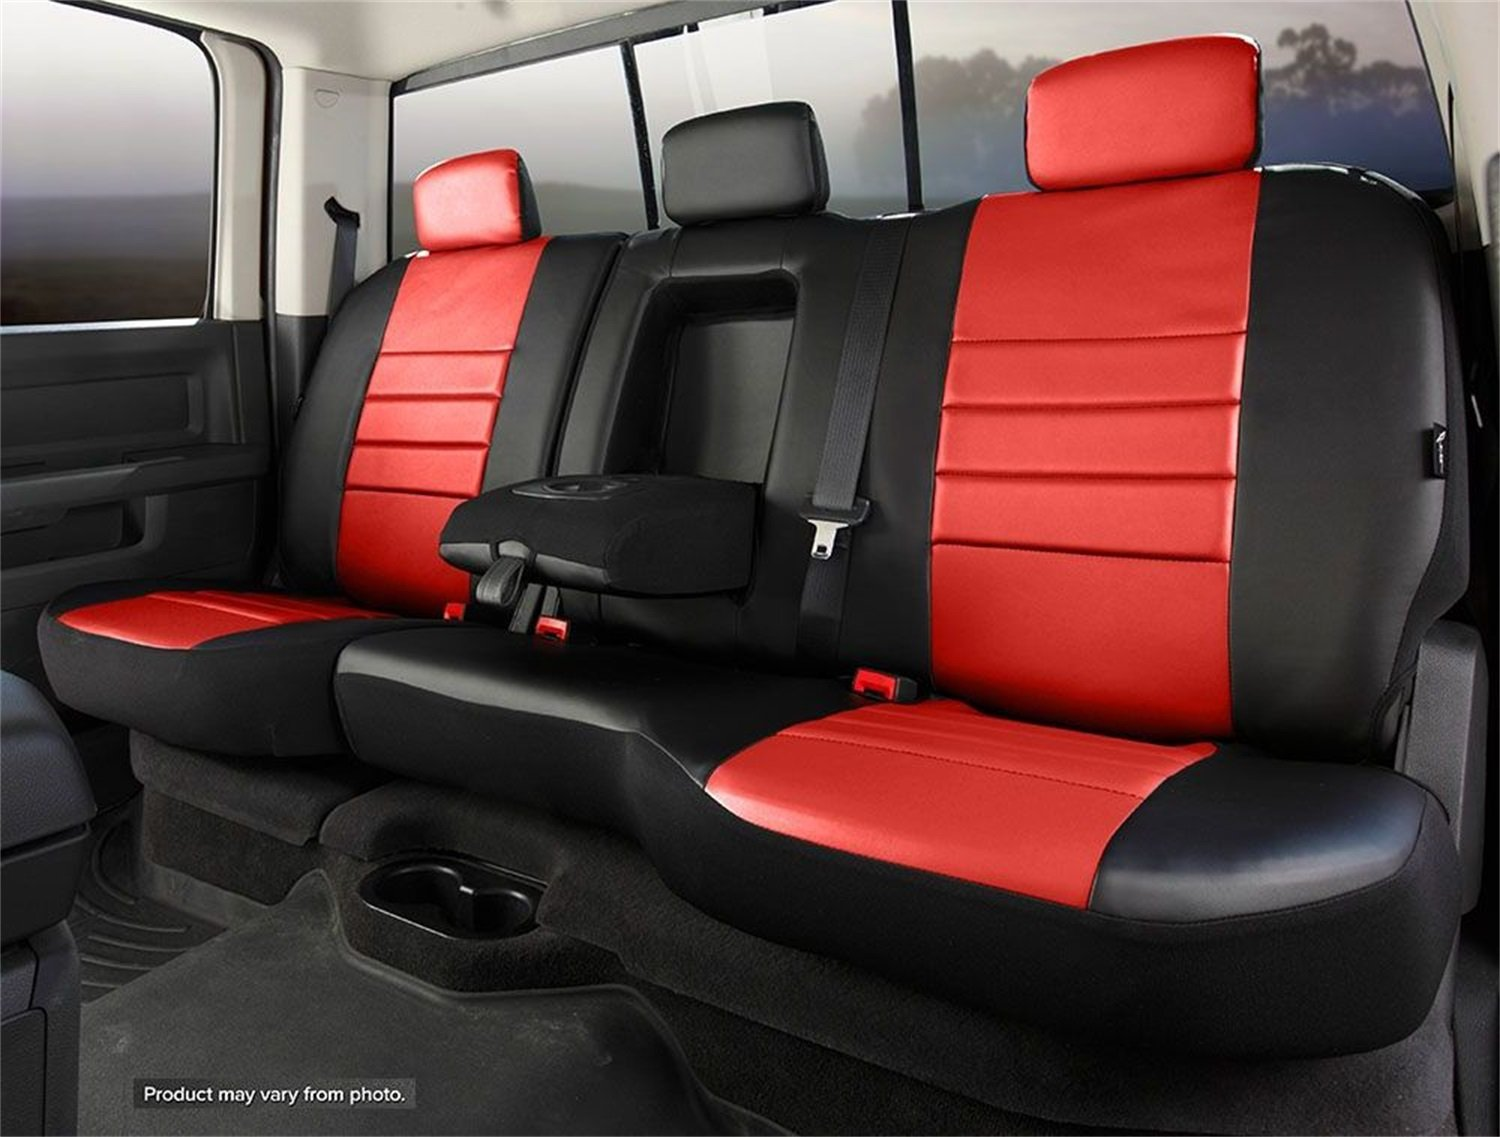 Leatherette, Fia SL62-38 RED Custom Fit Rear Seat Cover Split Seat 60//40 Black w//Red Center Panel